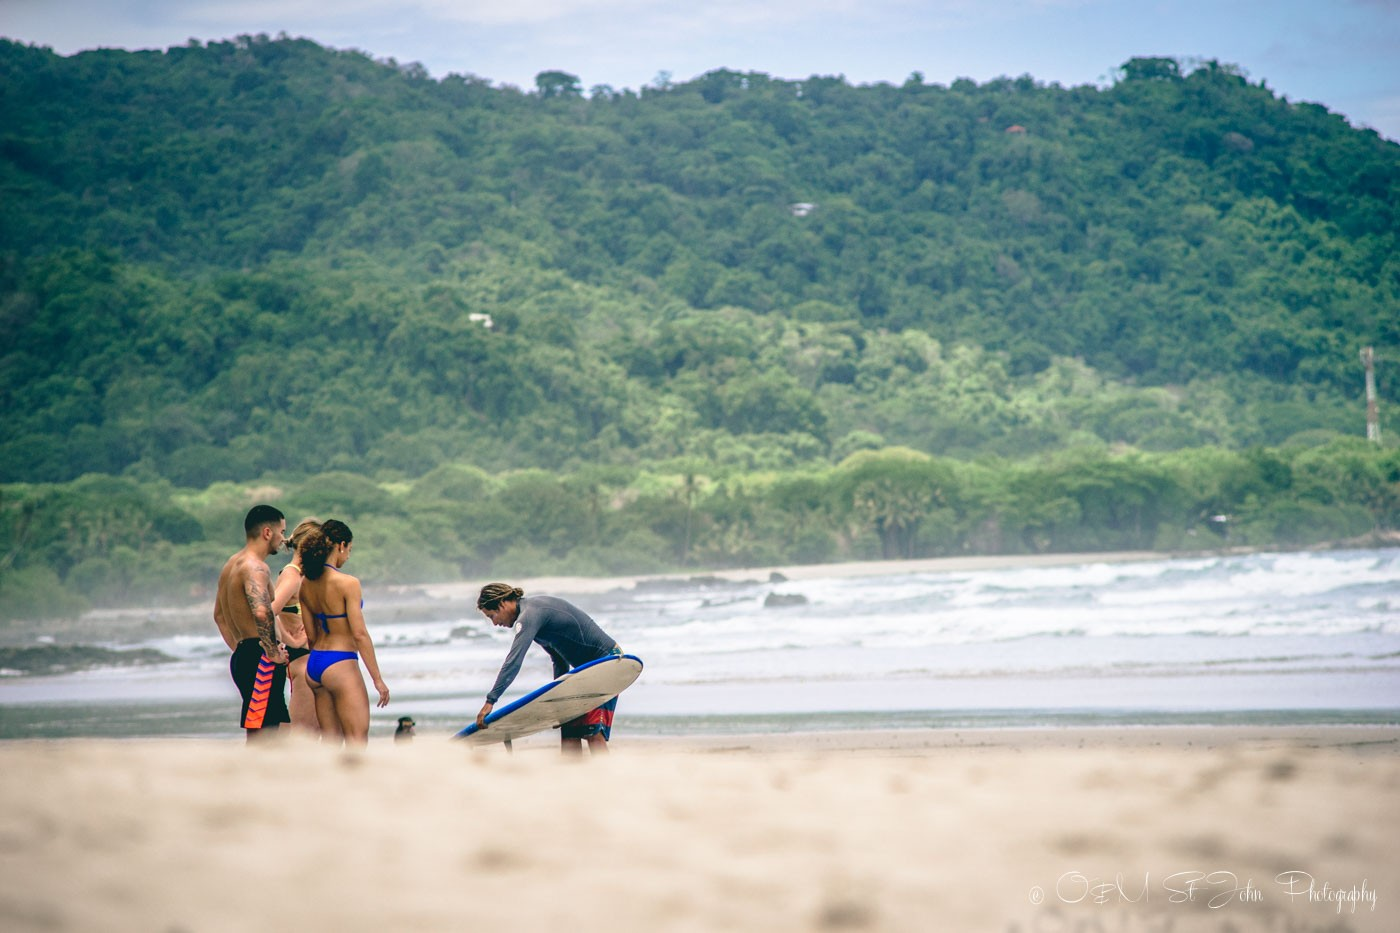 Surf lesson on the beach in Santa Teresa. Costa Rica